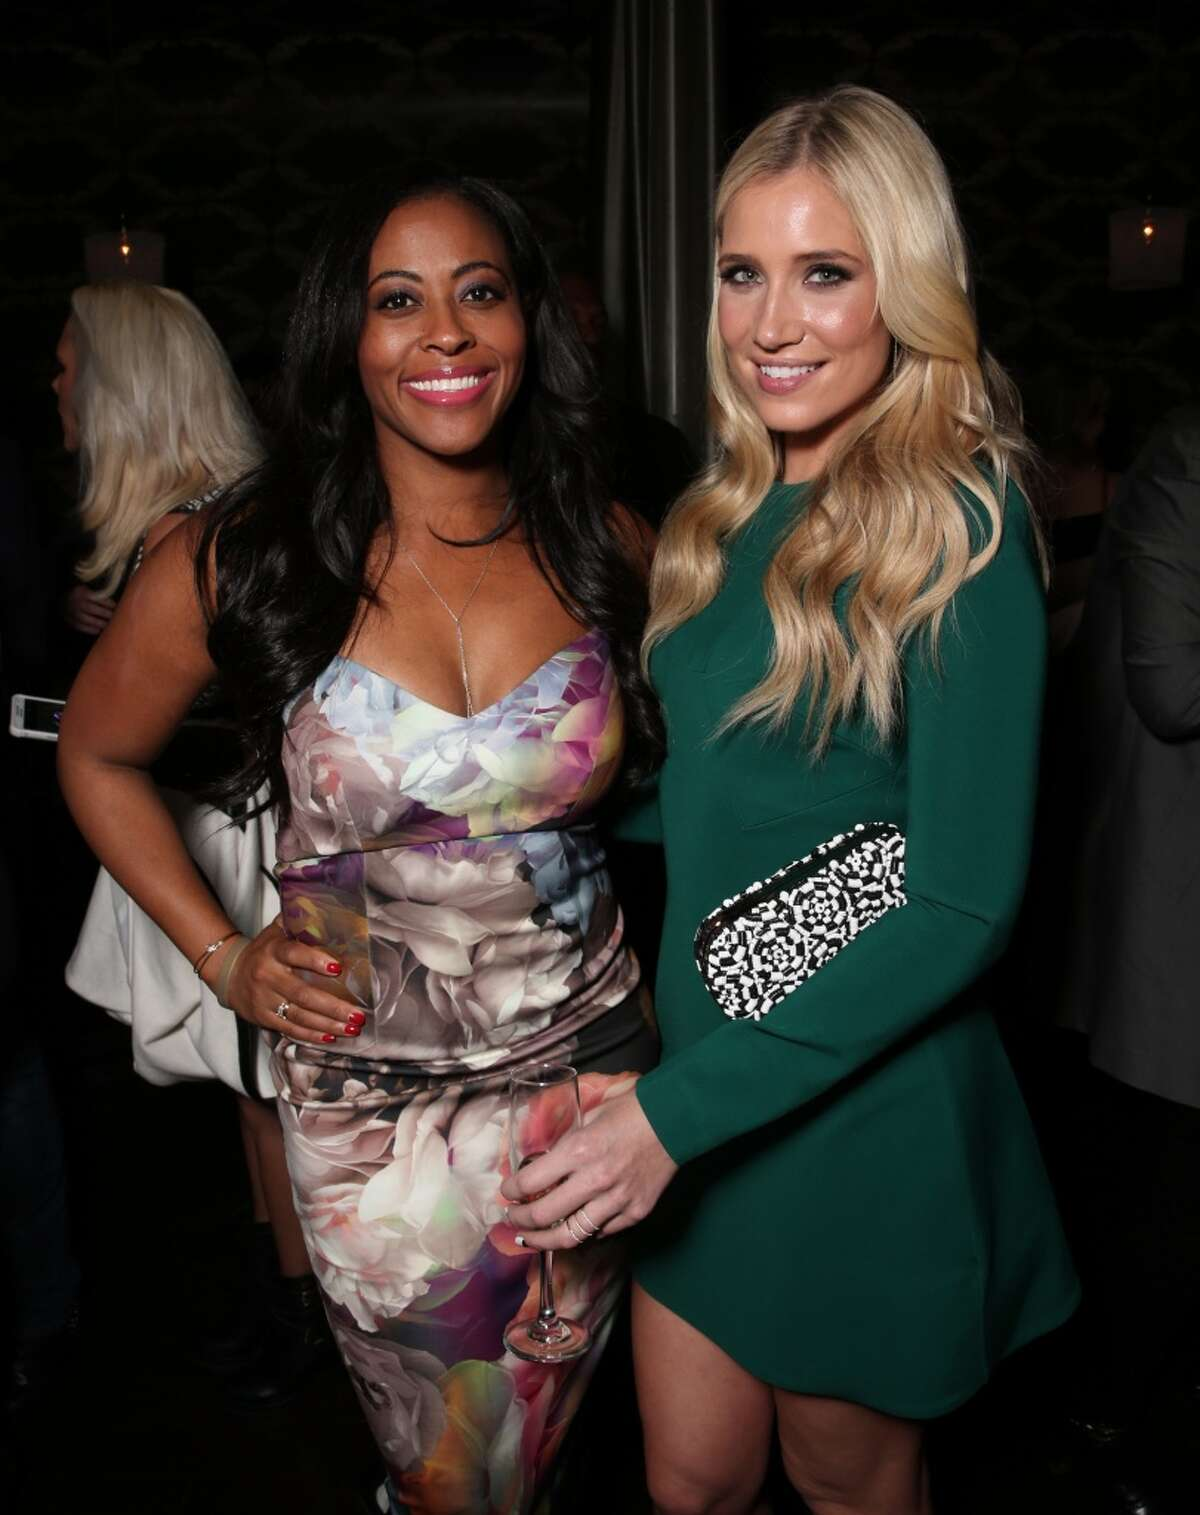 TV personality Kristine Leahy (R) attends DailyMail's after party for 2016 People's Choice Awards at Club Nokia on Jan. 6, 2016 in Los Angeles, Calif.